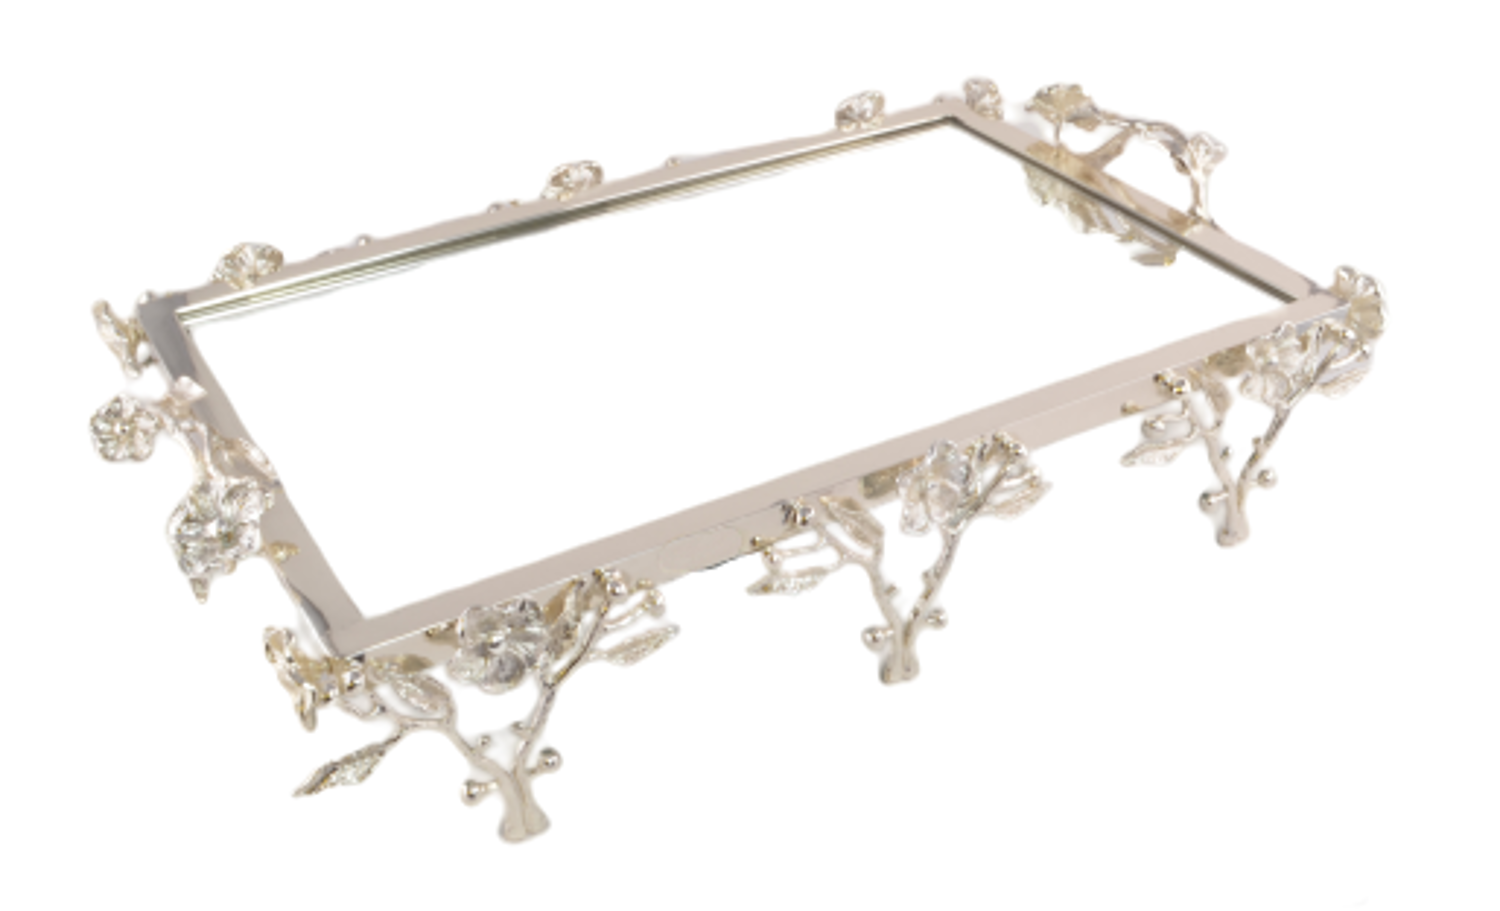 Picture of MEVLANA TRAIL RECTANGLE IVY SILVER WITH MIRROR